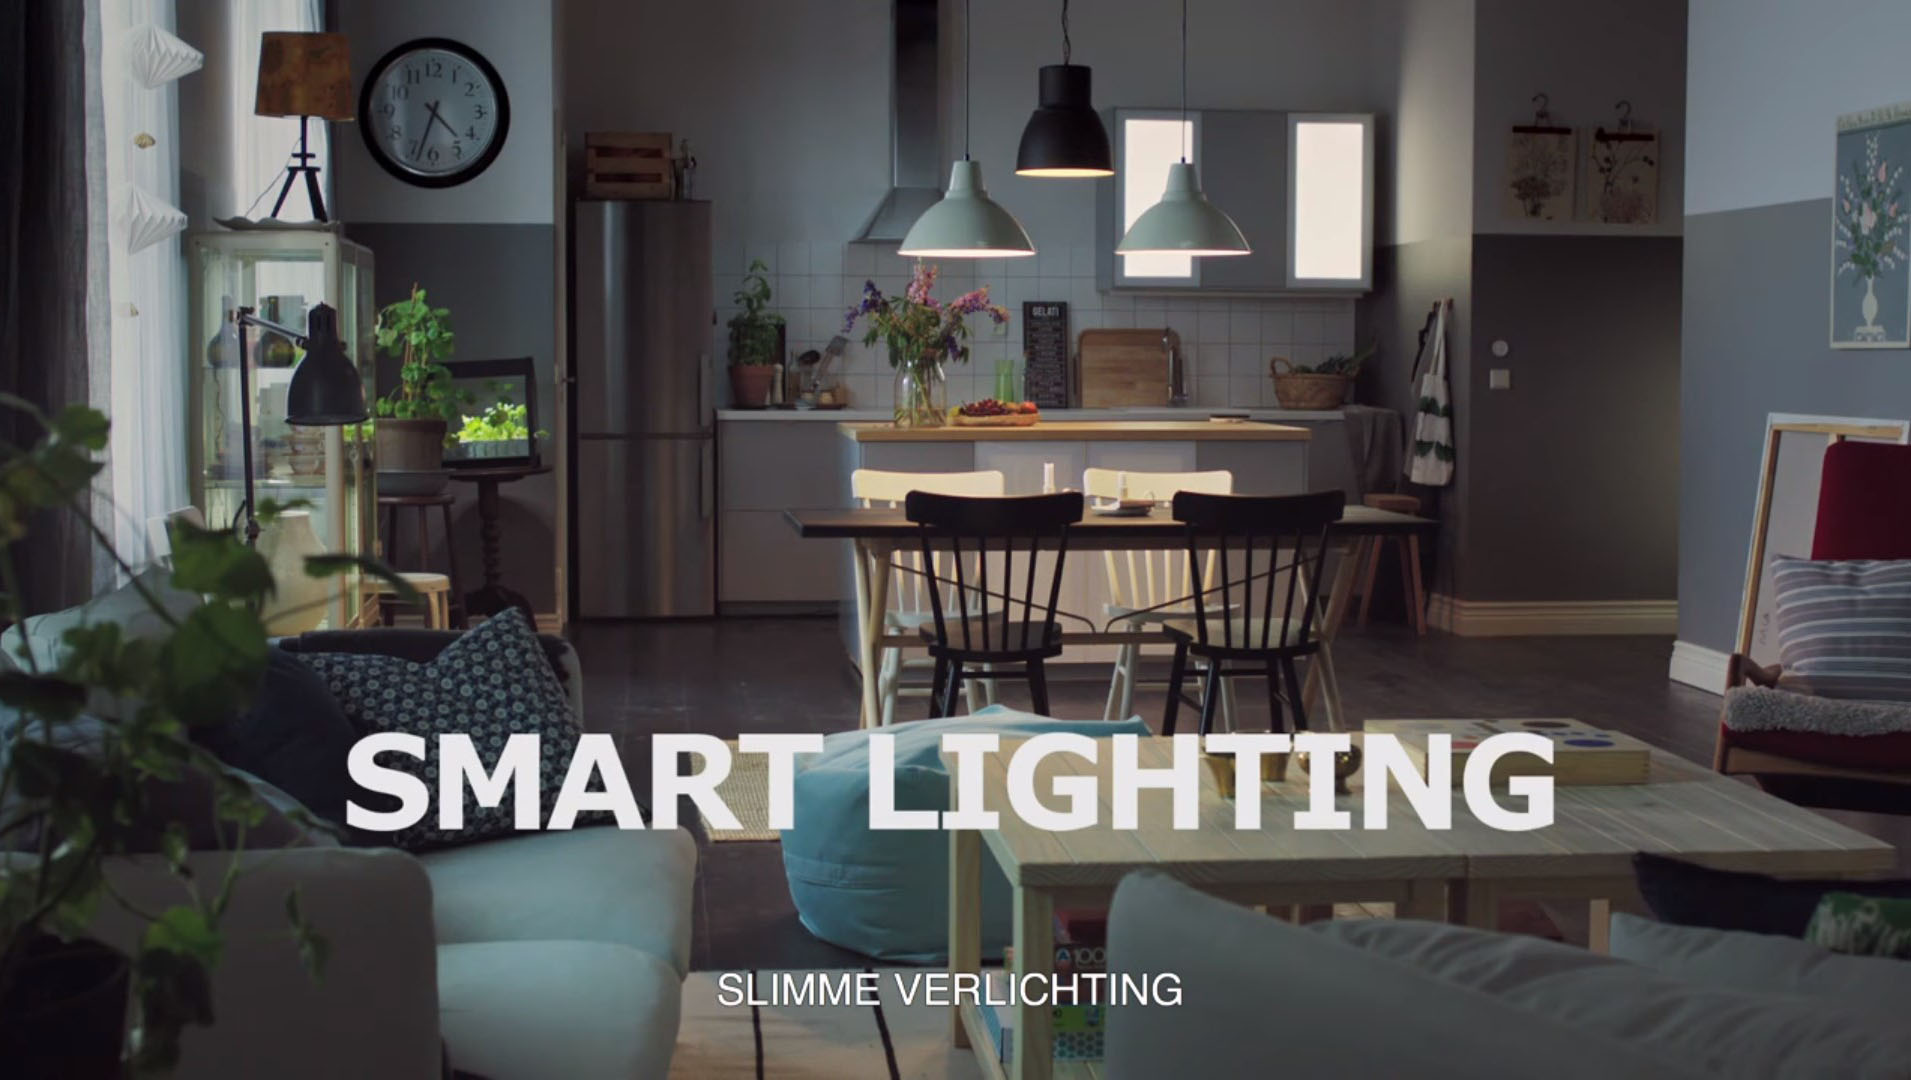 ikea rajoute le contr le vocal ses lampes connect es frandroid. Black Bedroom Furniture Sets. Home Design Ideas